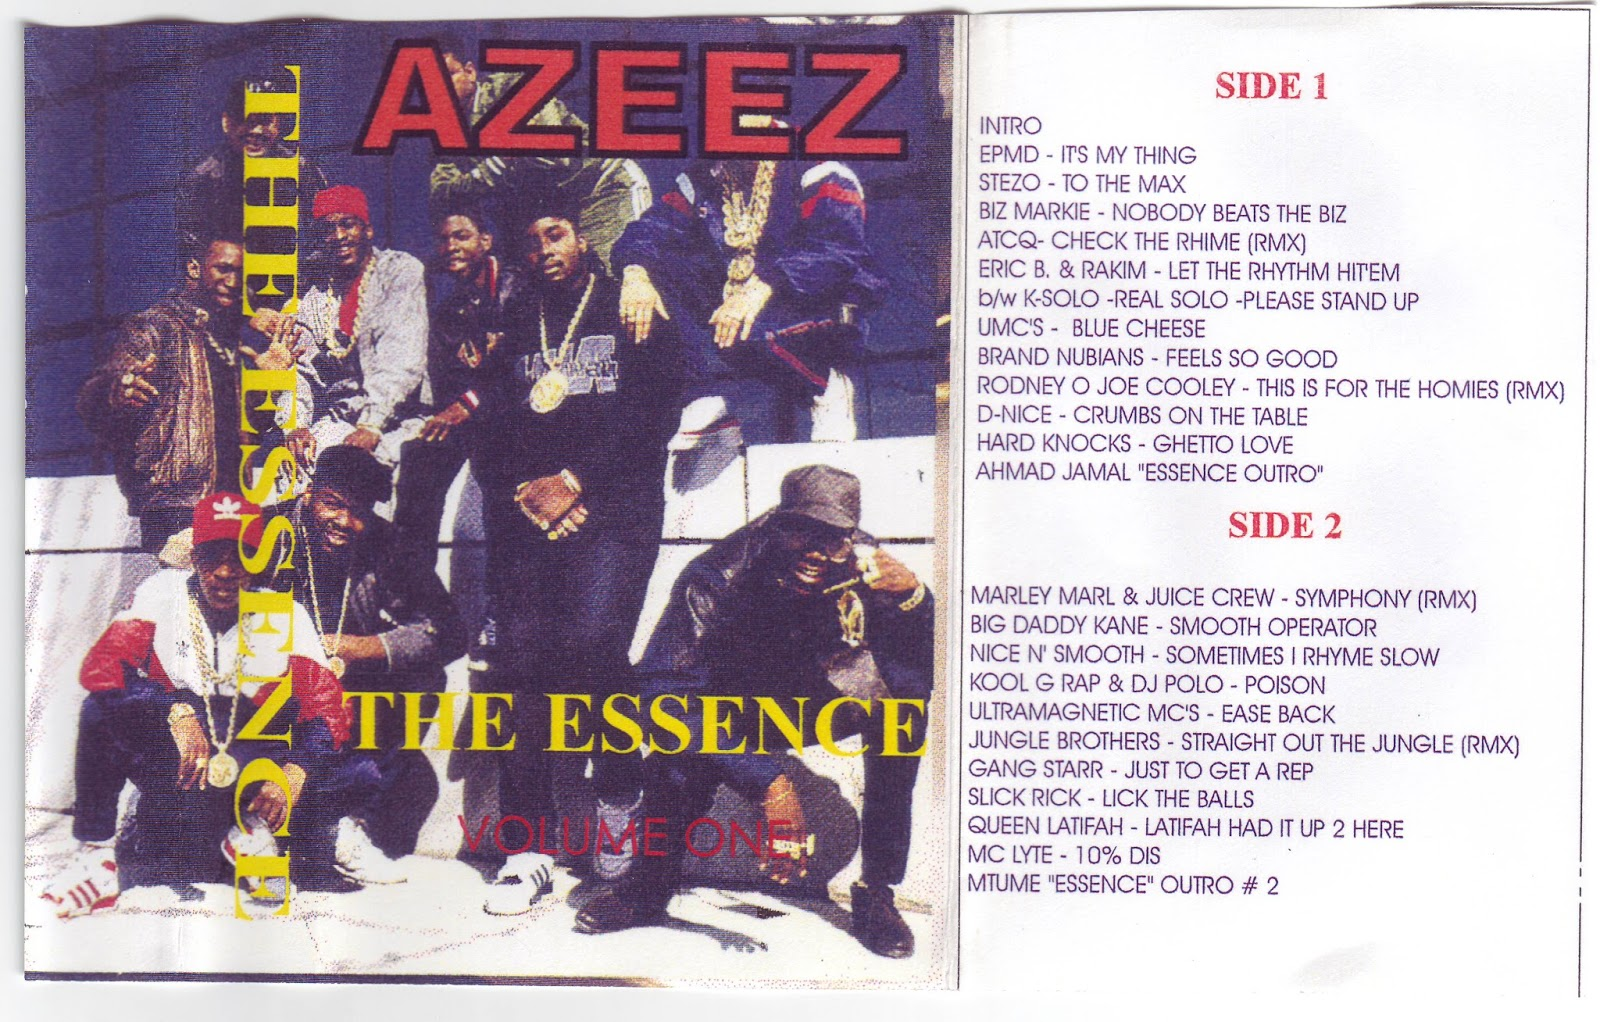 00-dj_azeez-the_essence_vol._one-199x-azeez-the_essence_vol._one-ltbb.jpg